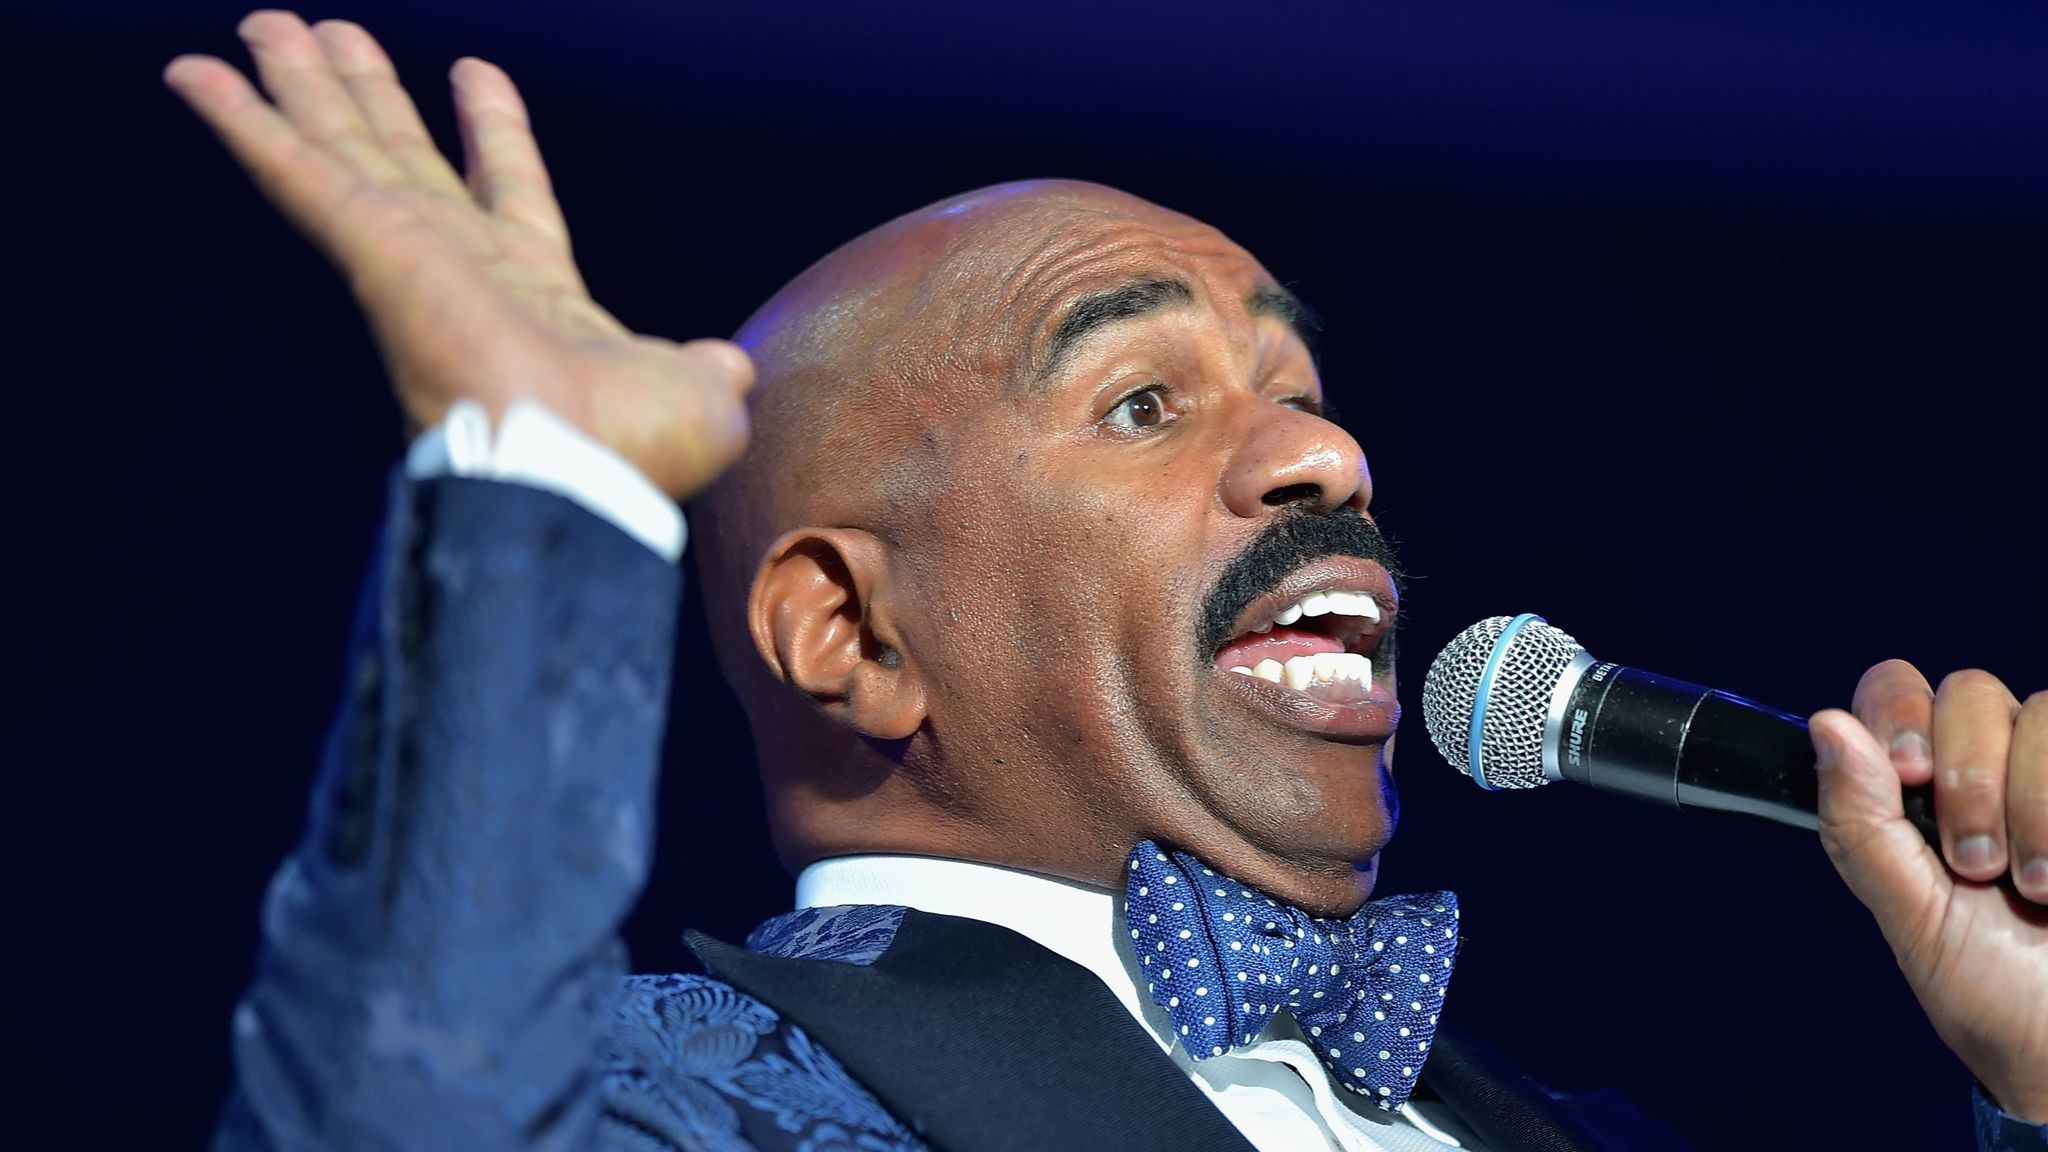 steve harvey takes a shot at chicago s celebrity pool in new